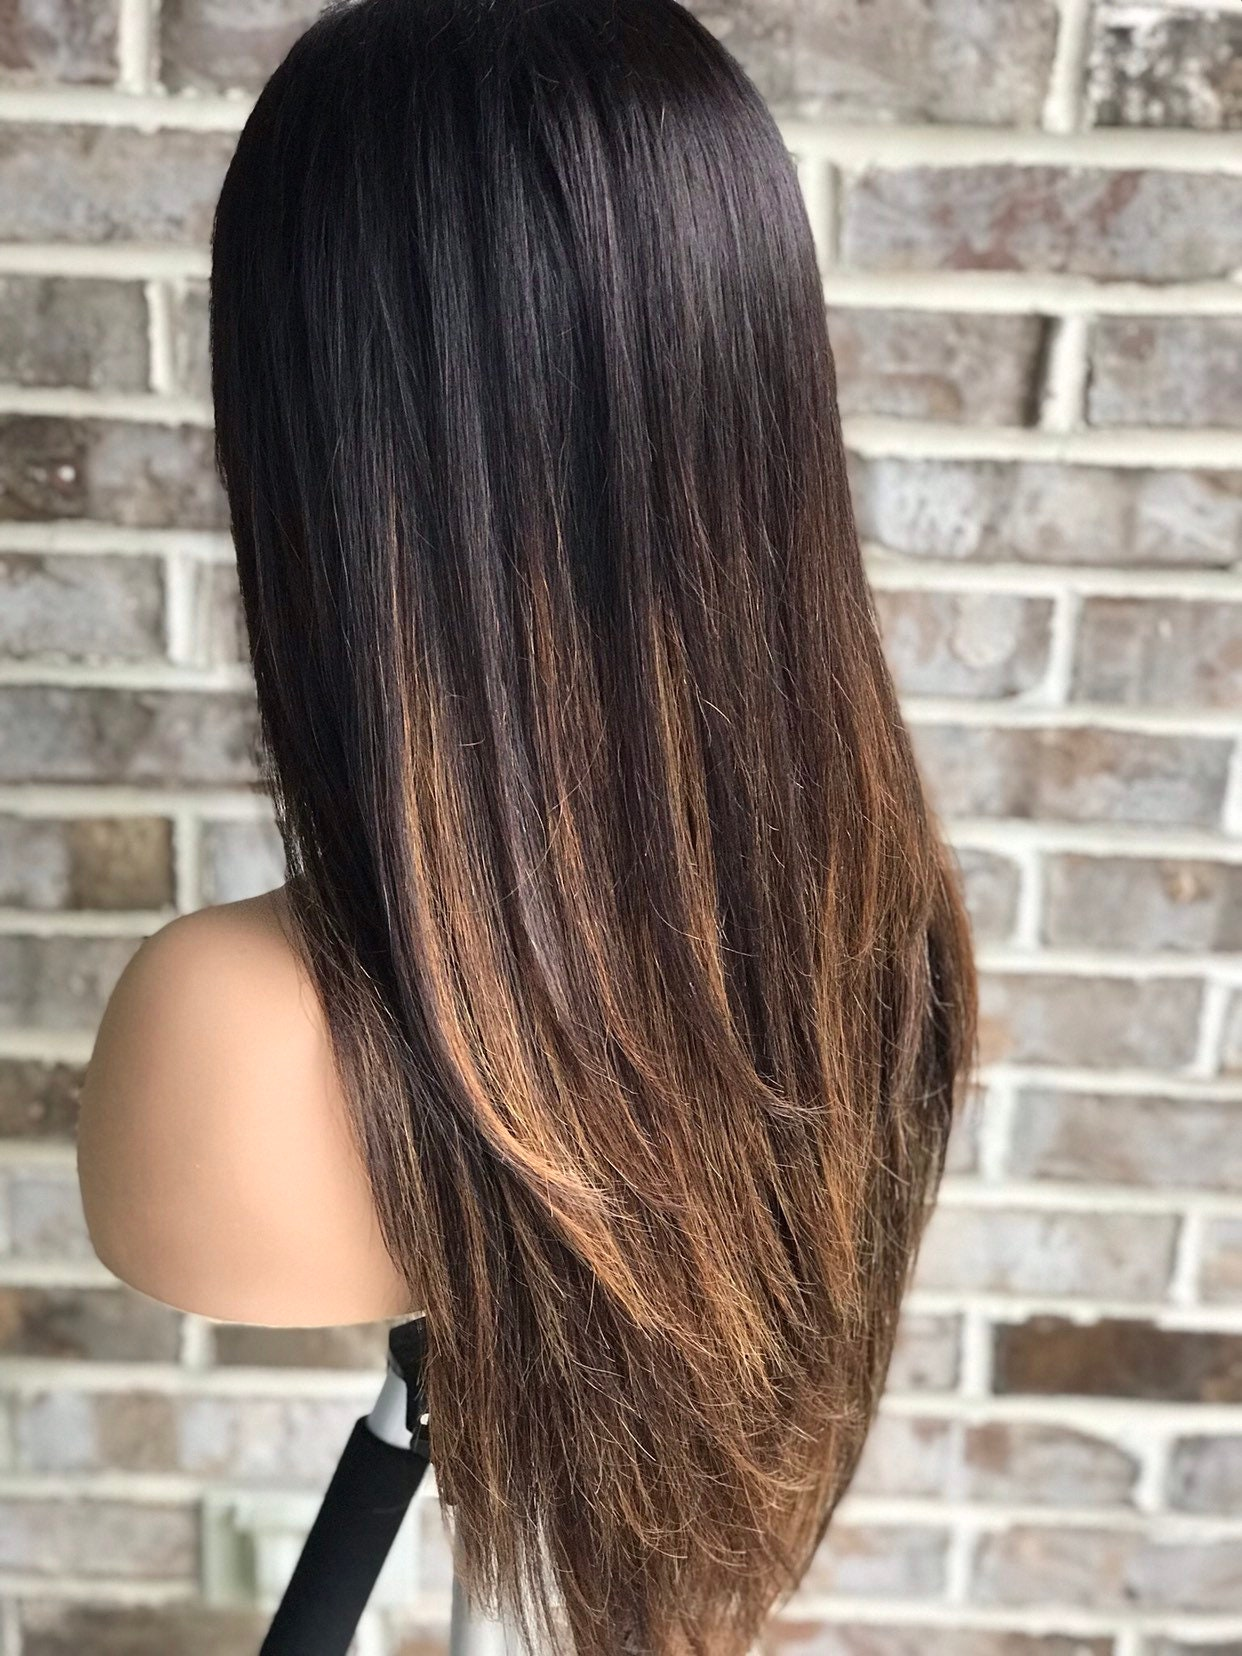 Lace front womens wig, black 1b, subtle caramel balayage highlights, 130%  density, highlighted wig, black hair, straight hair